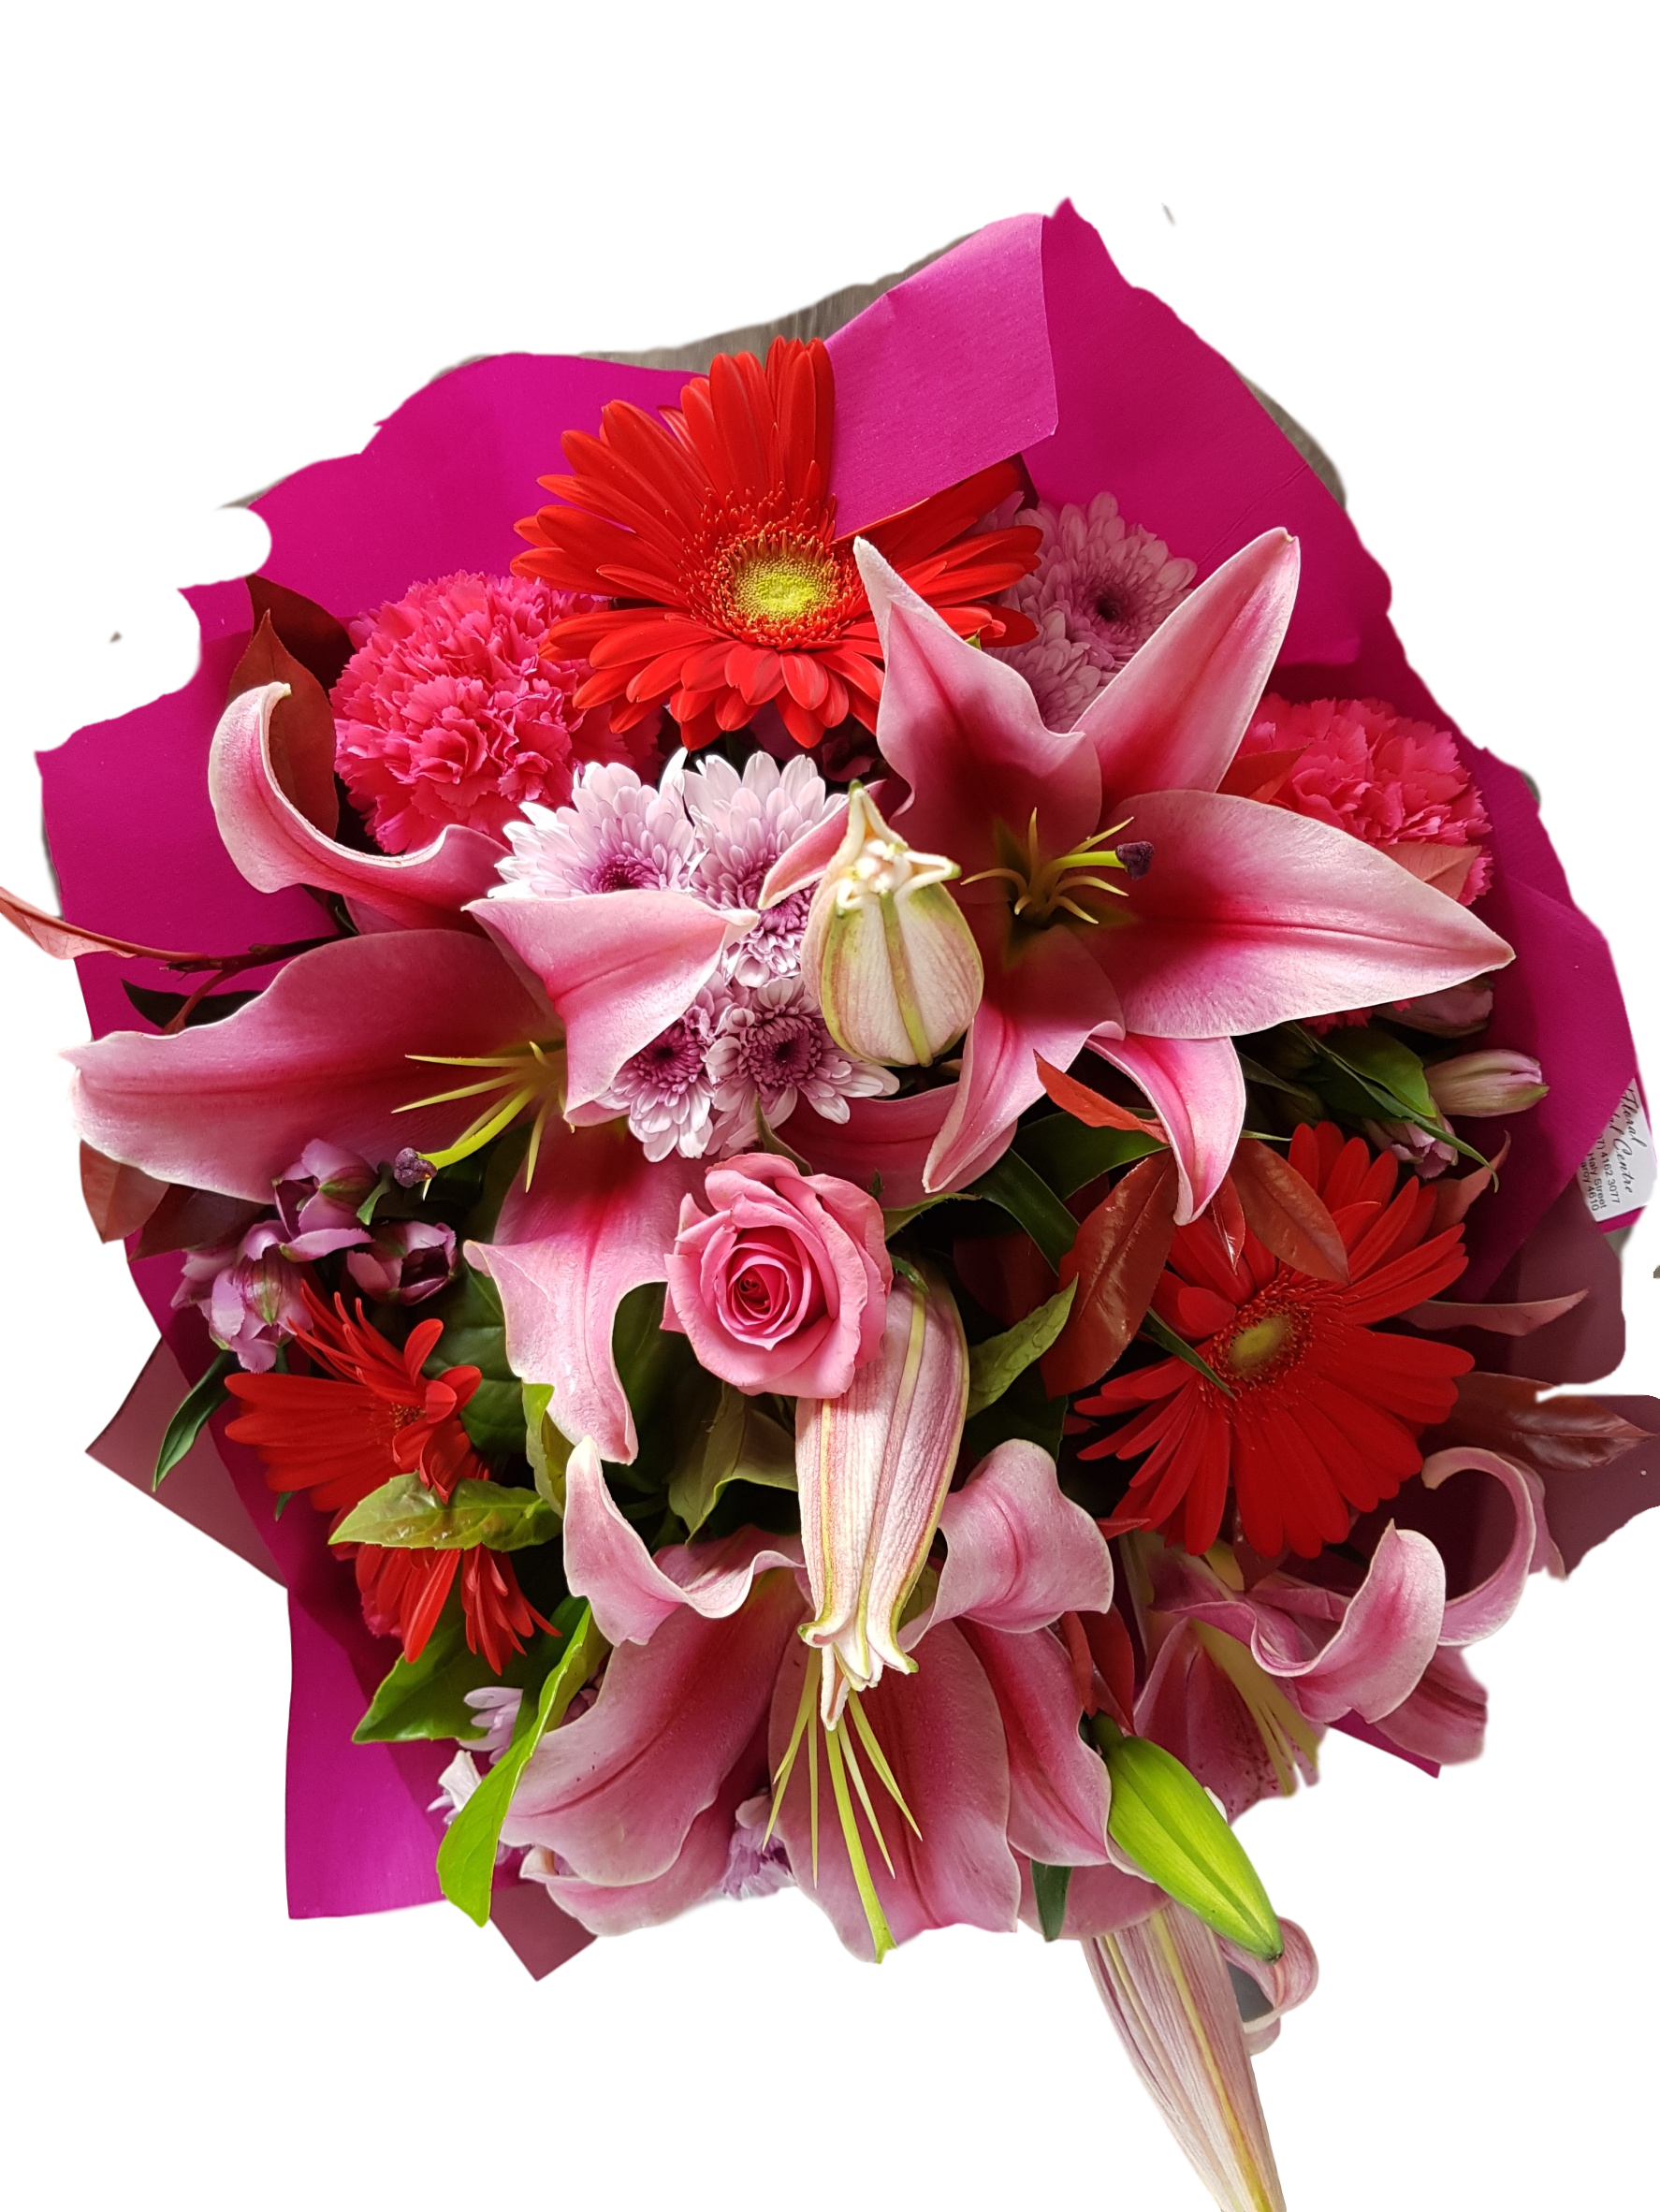 PINK BOUQUET INCLUDING LILIES, GERBERAS. ROSES, CHRYSANTHEMUMS, CARNATIONS AND ALSTROEMERIA.